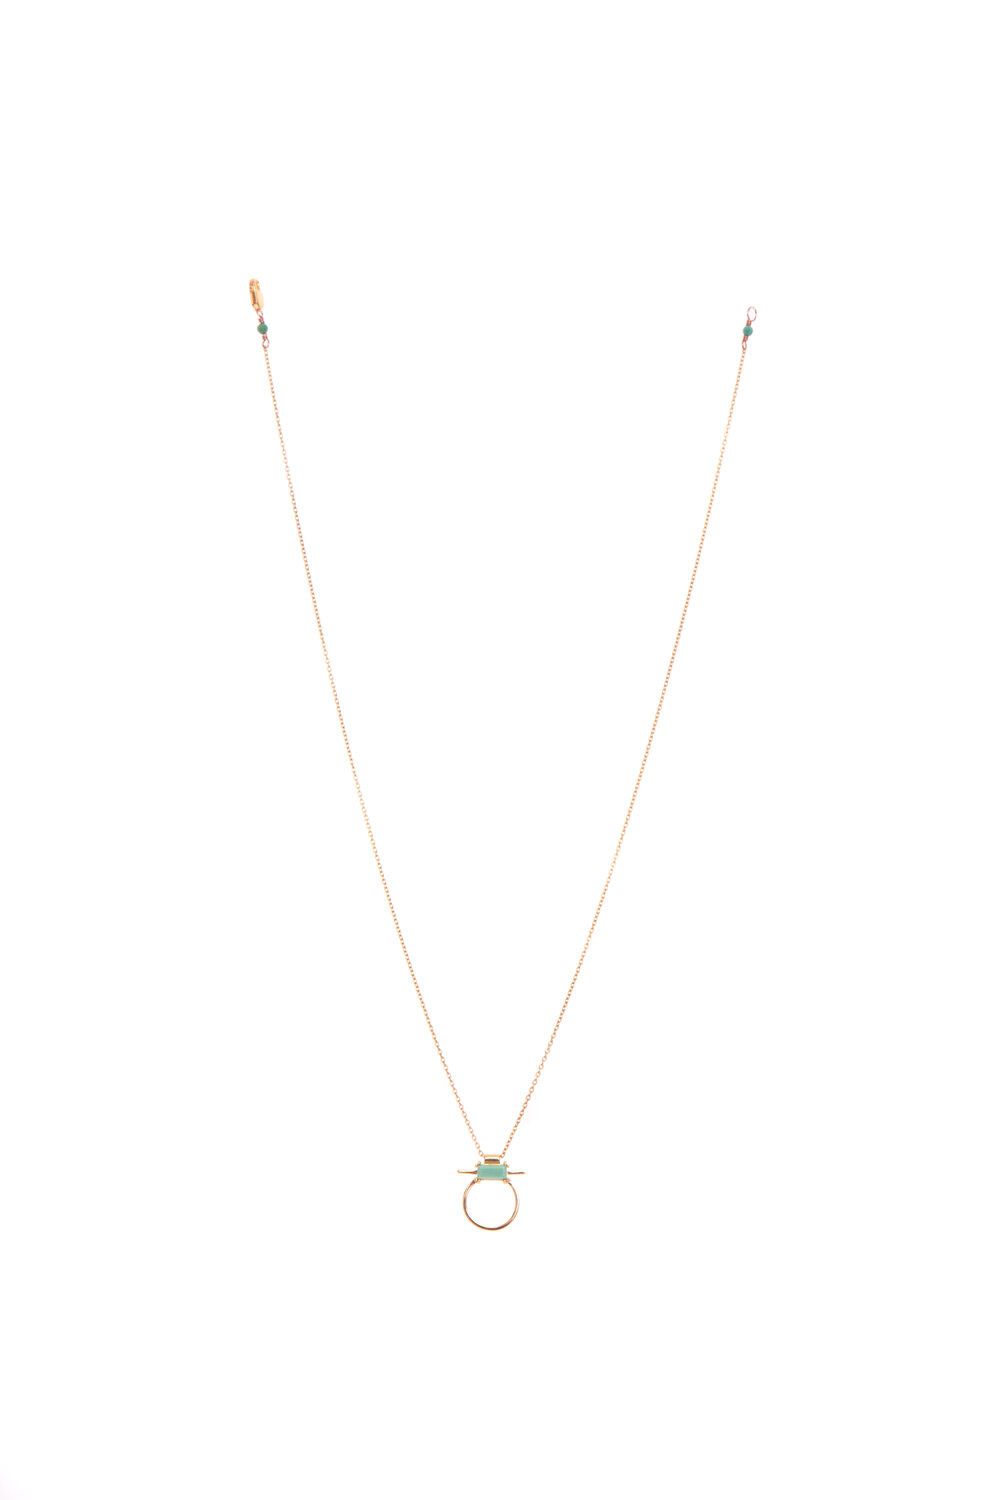 Hailey Gerrits Antigua Necklace- Green Turquoise